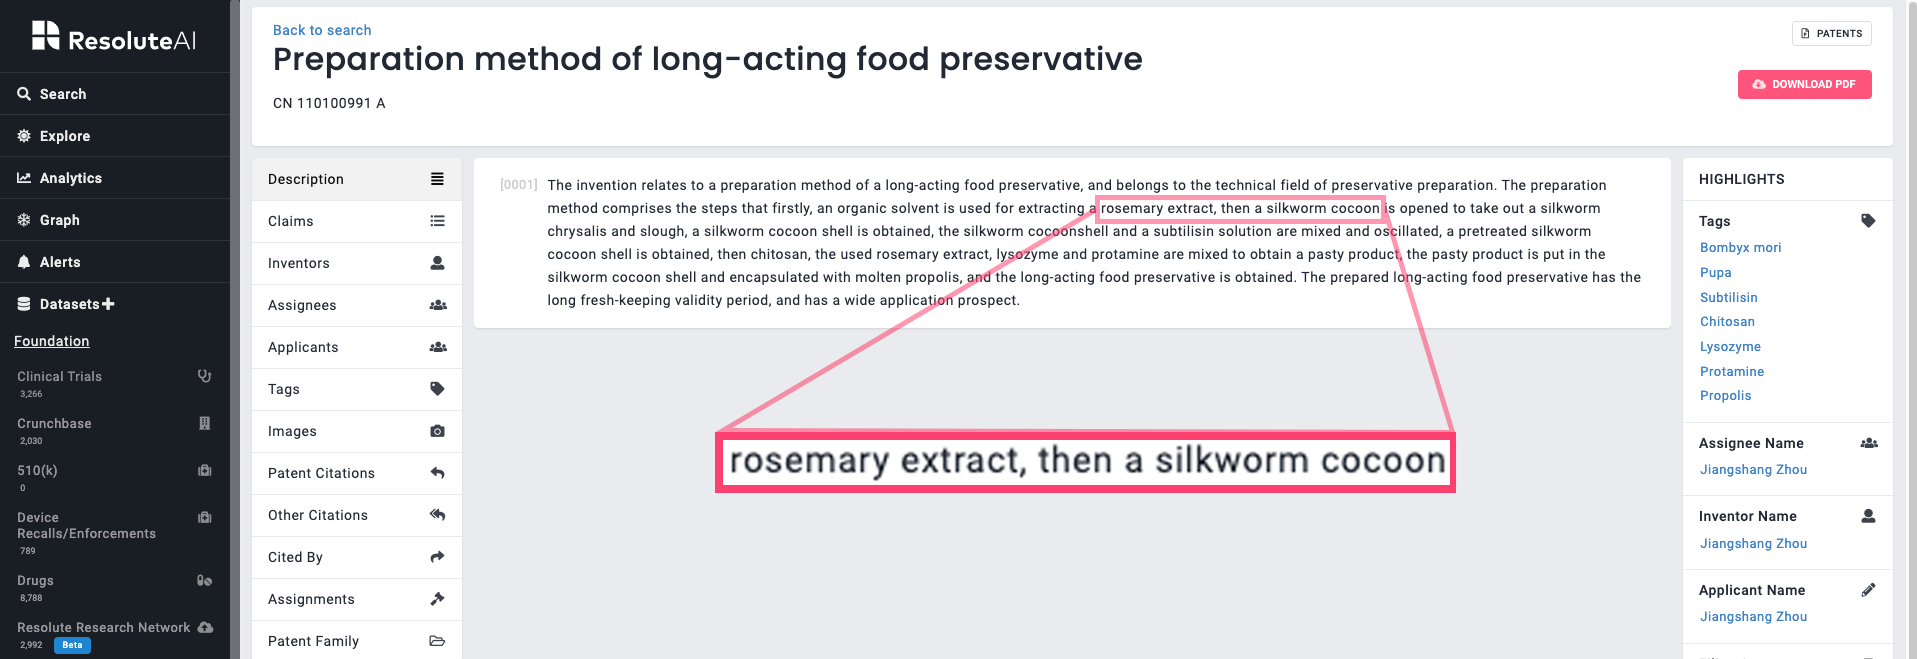 Rosemary and silkworm use in preservatives